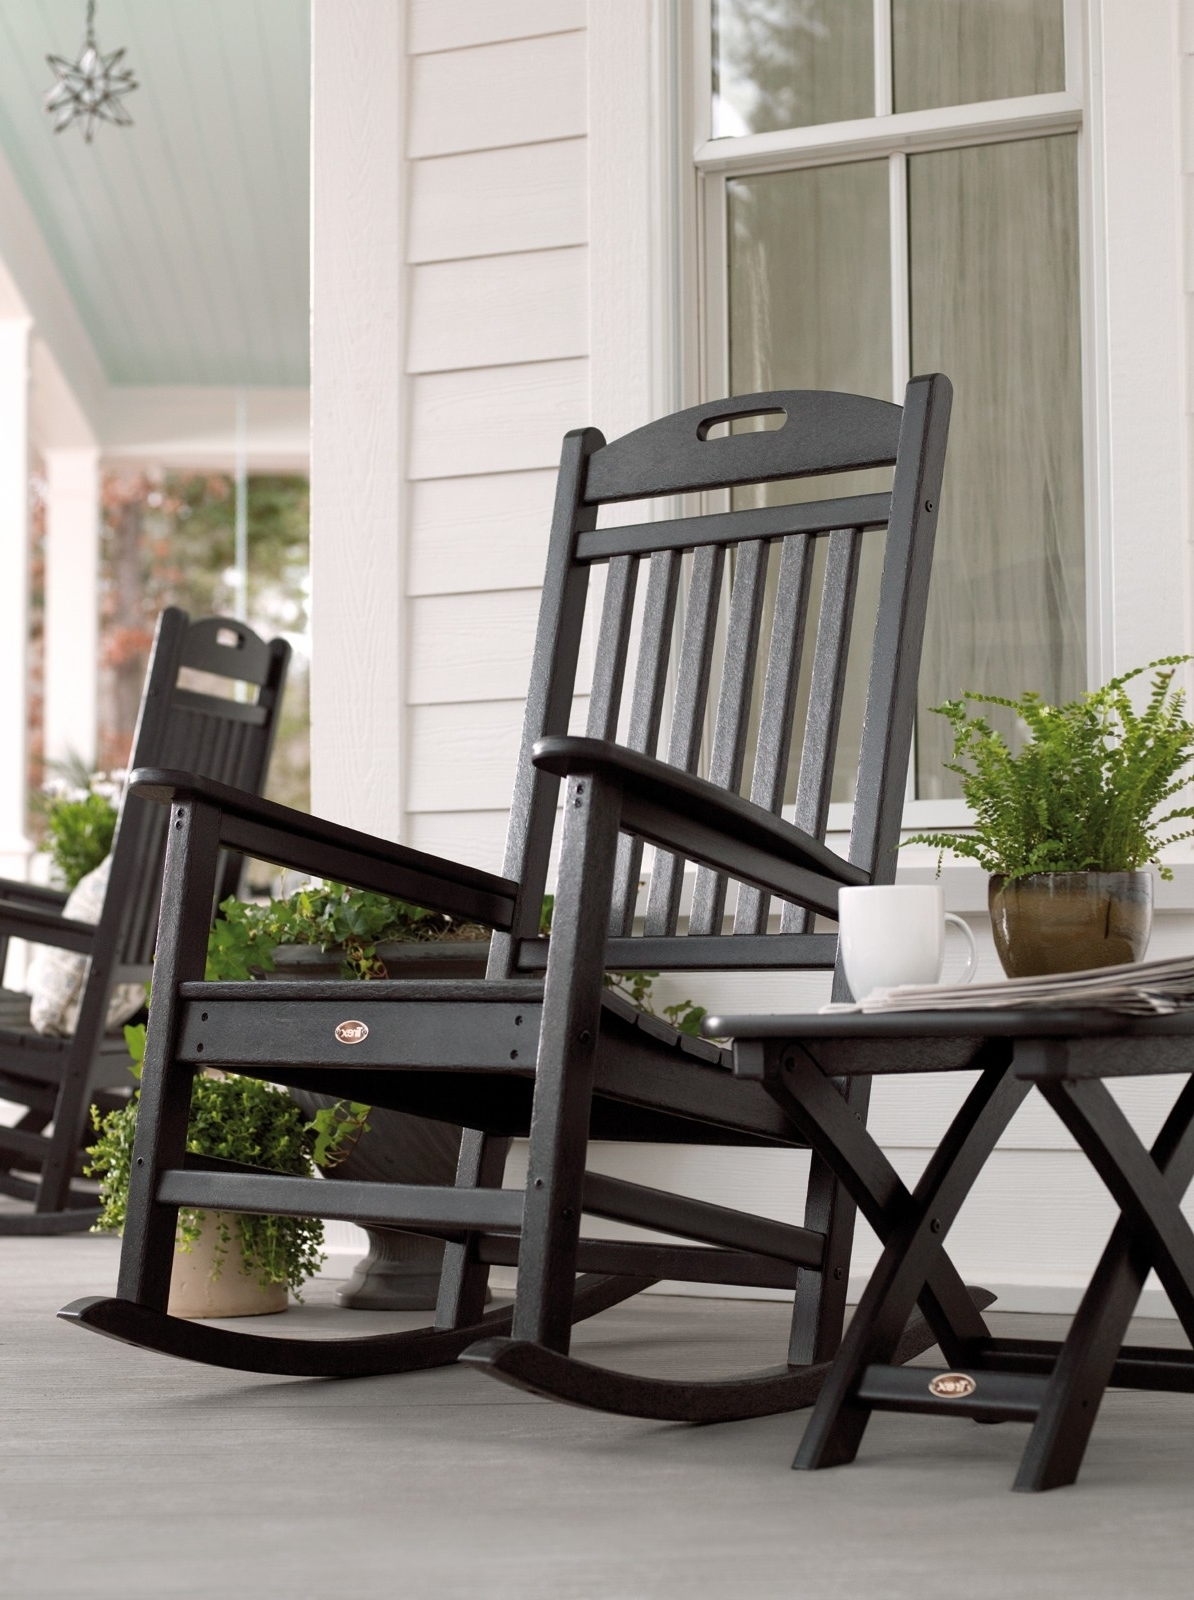 Vintage Outdoor Rocking Chairs with regard to Latest Patio & Garden : Rocking Chairs For Outdoors Amazing Amazon Merry